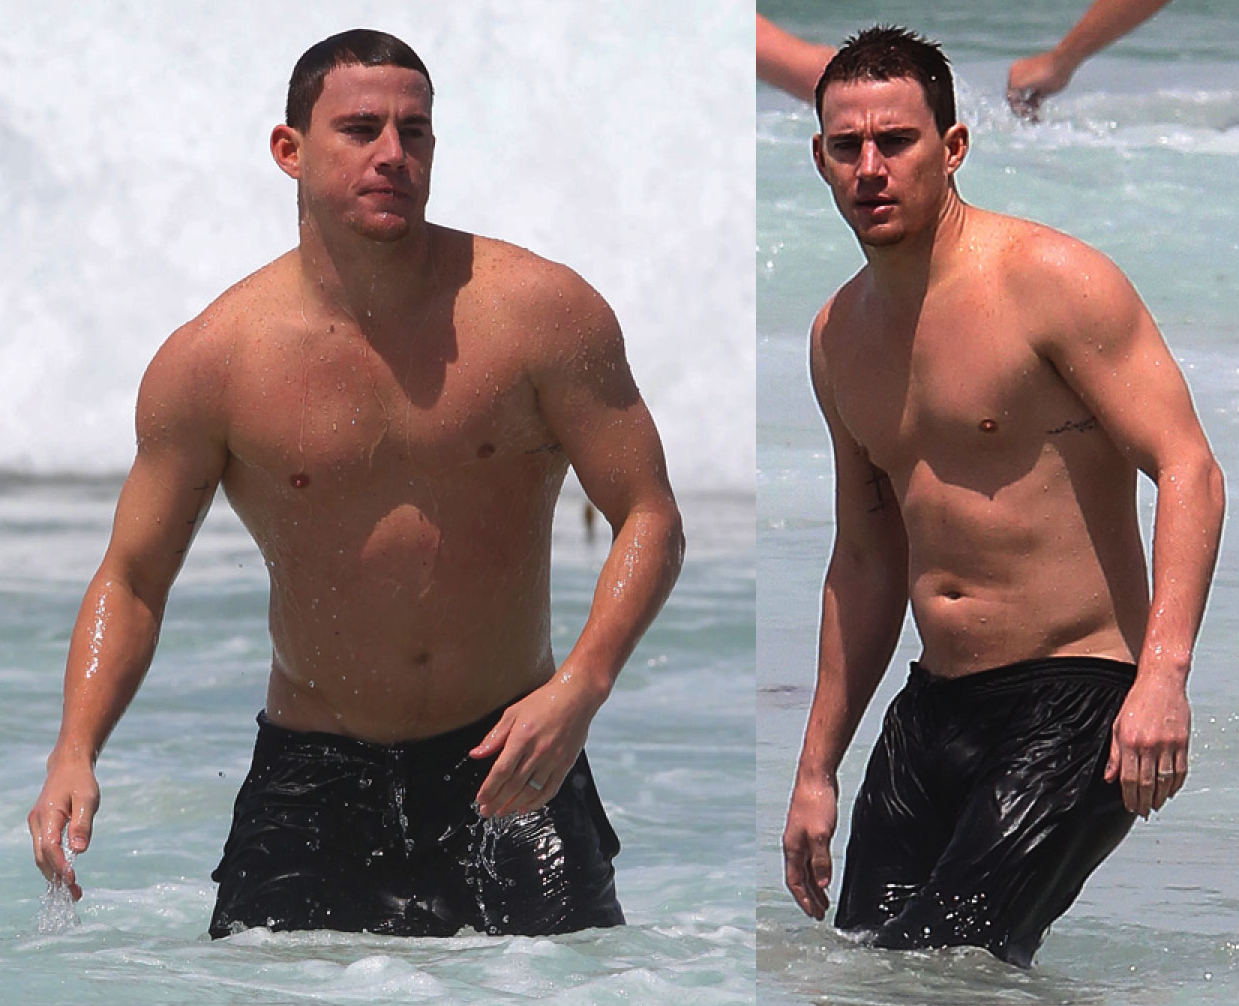 Channing tatum height weight and body measurements image result for channing tatum fat m4hsunfo